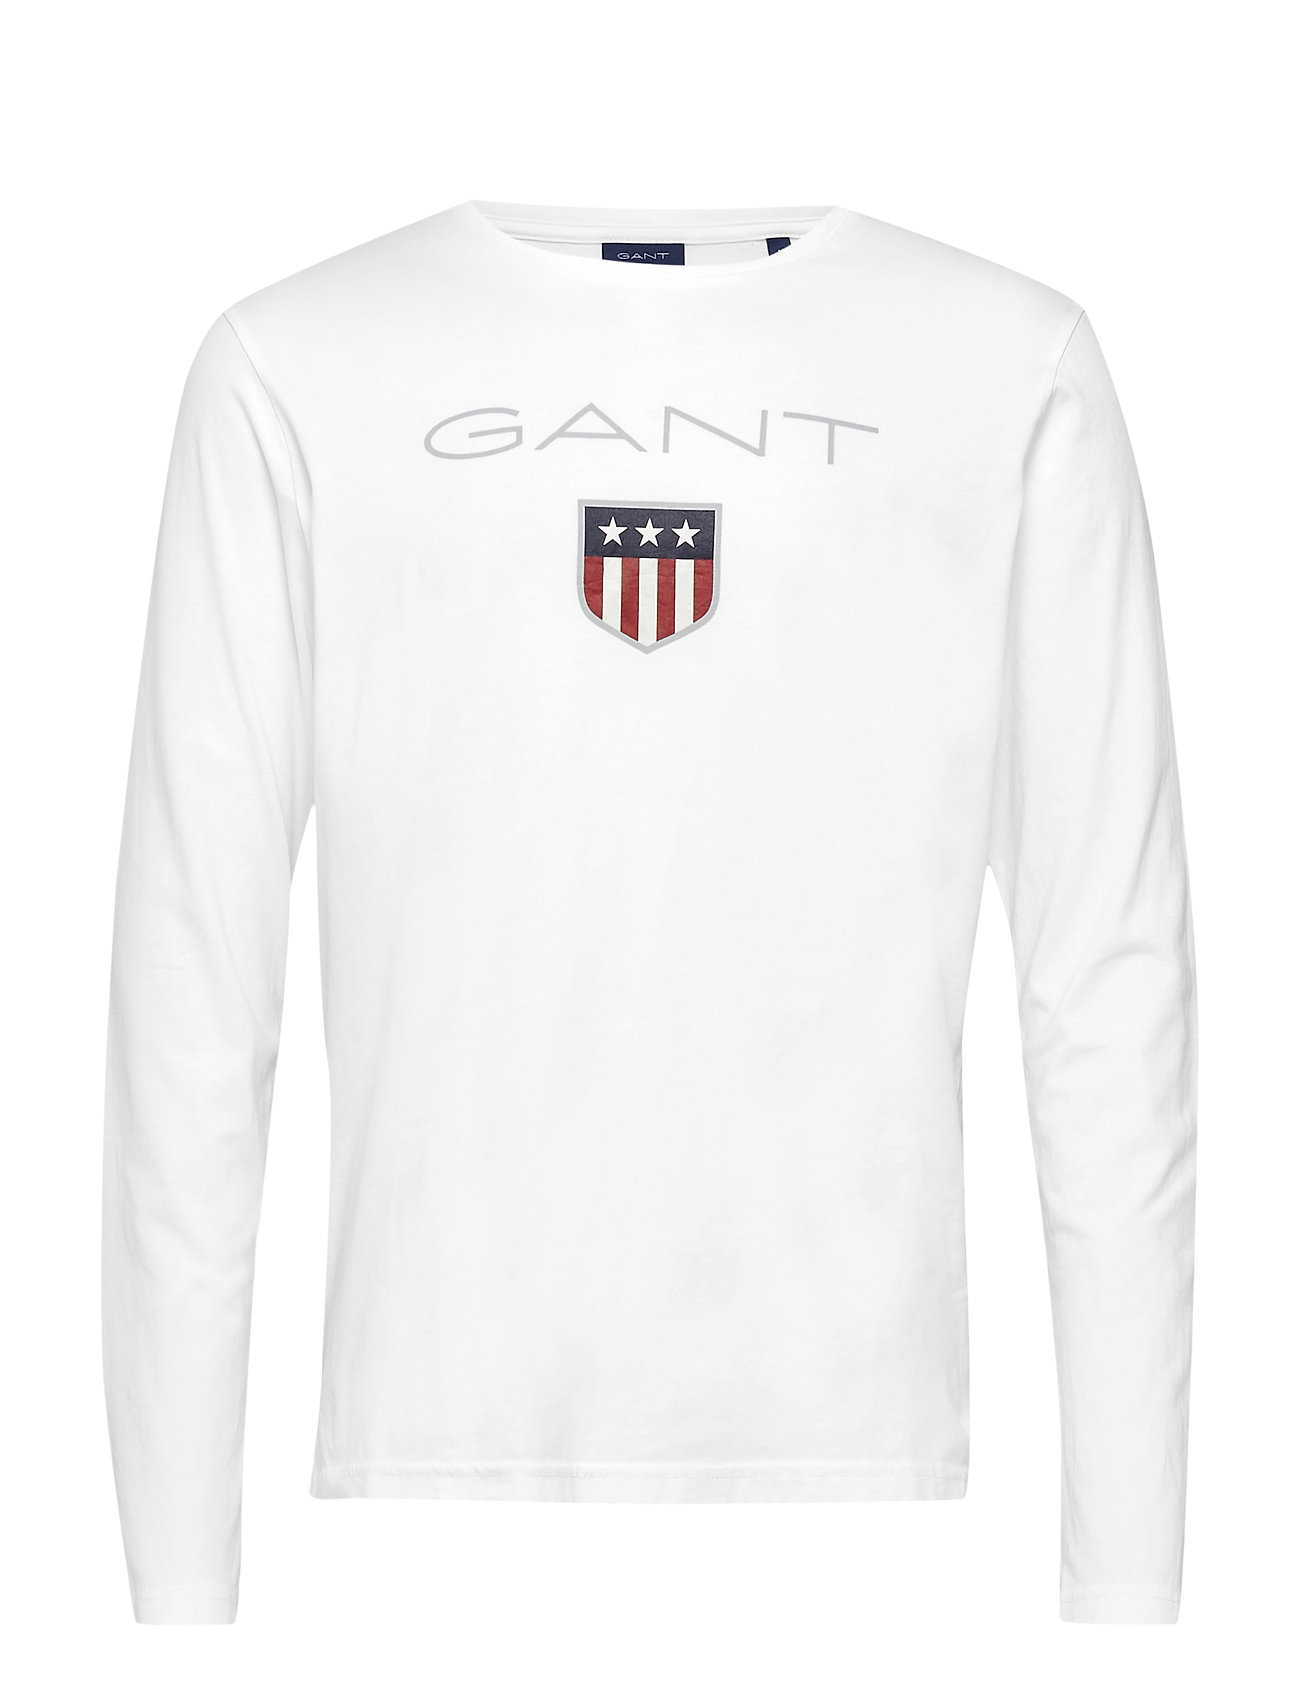 GANT SHIELD LS T-SHIRT - WHITE